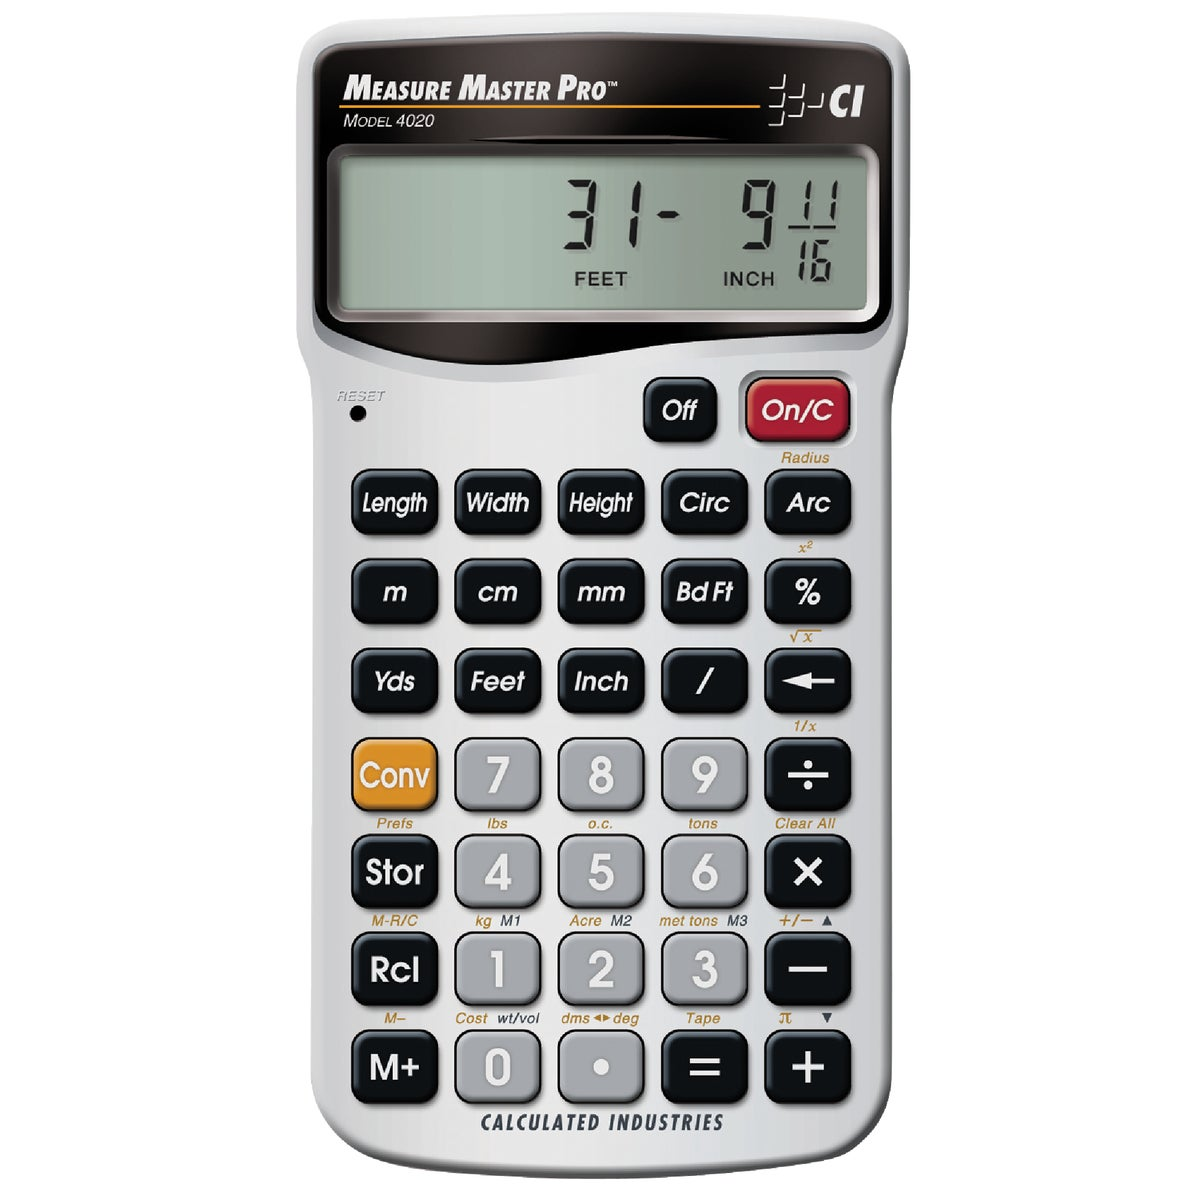 MEAS MSTR PRO CALCULATOR